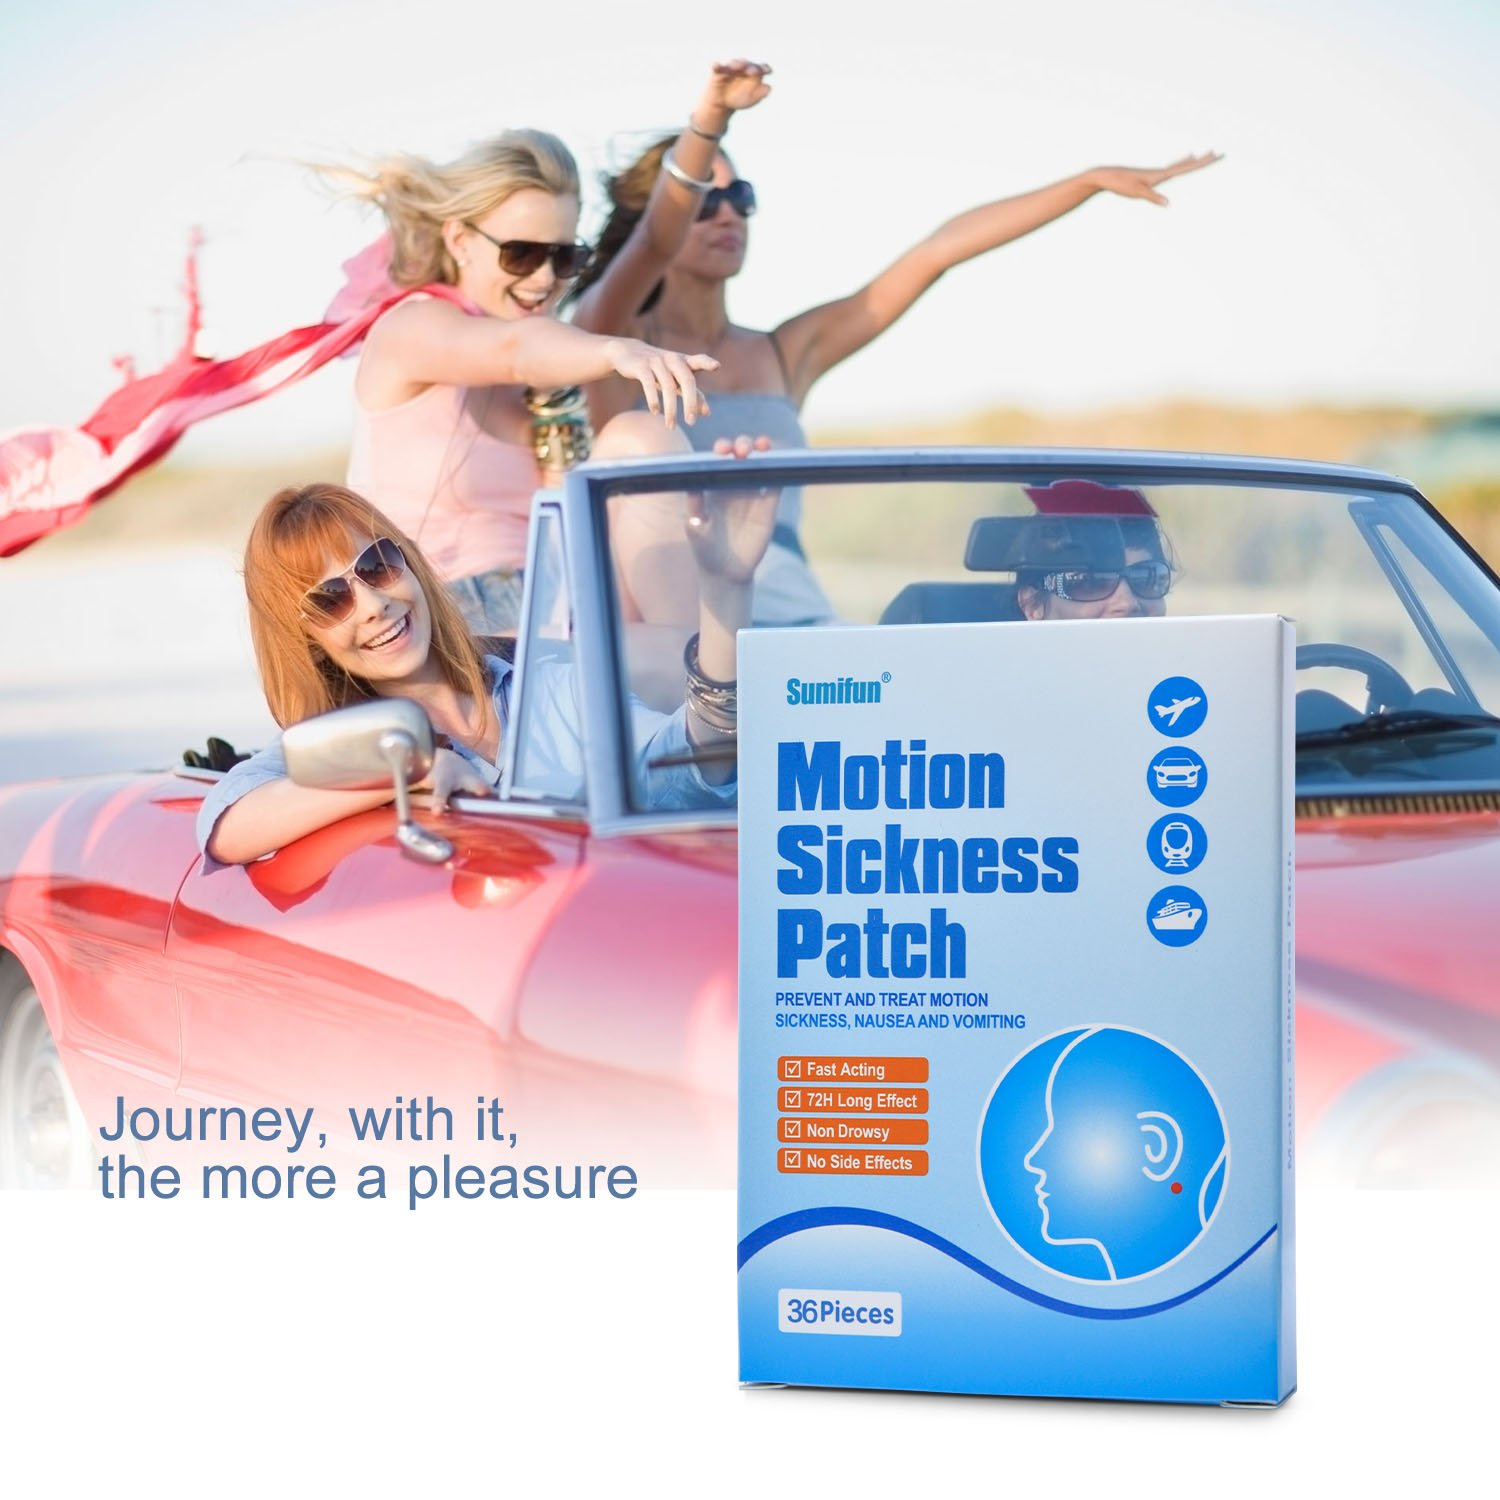 Sumifun 72 Pcs/ 2 Boxes Herbal Motion Sickness Patch by Sumifun (Image #5)